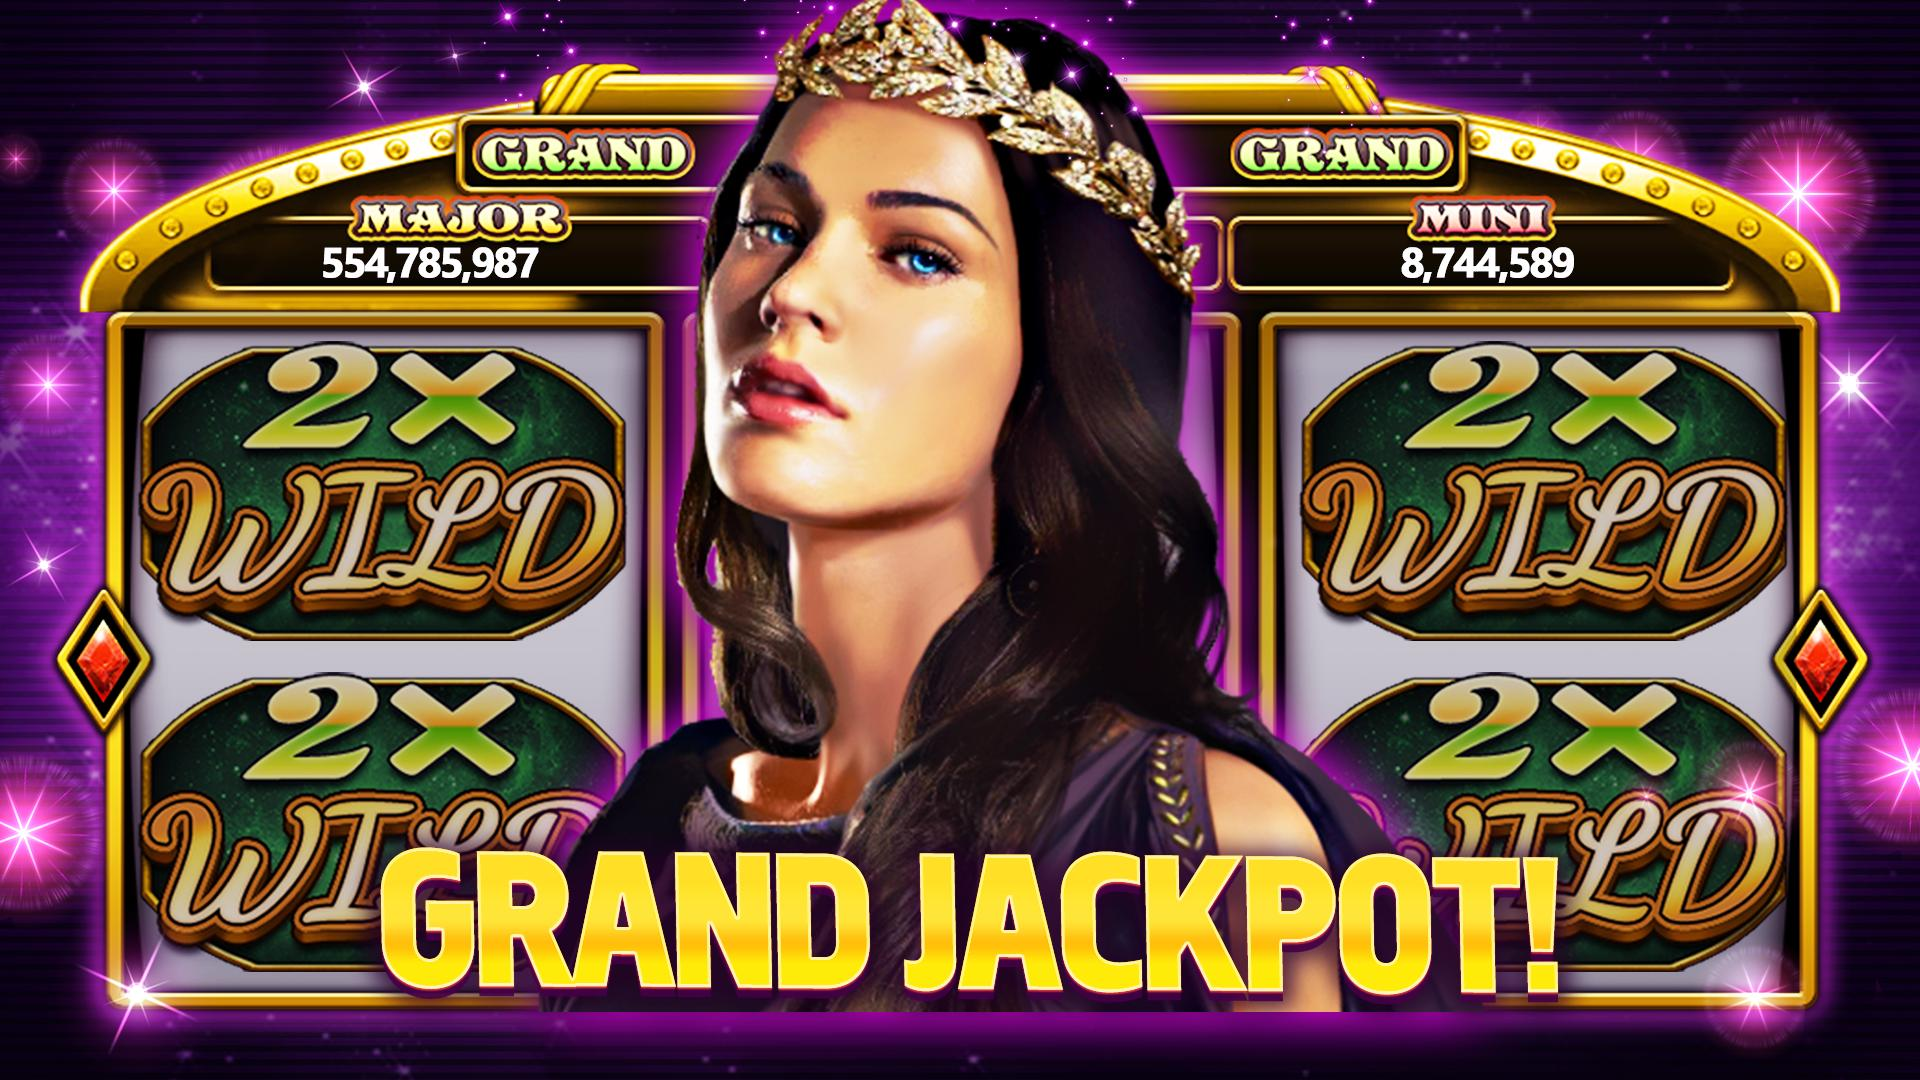 Grand Jackpot Slots Pop Vegas Casino Free Games 1.0.44 Screenshot 21